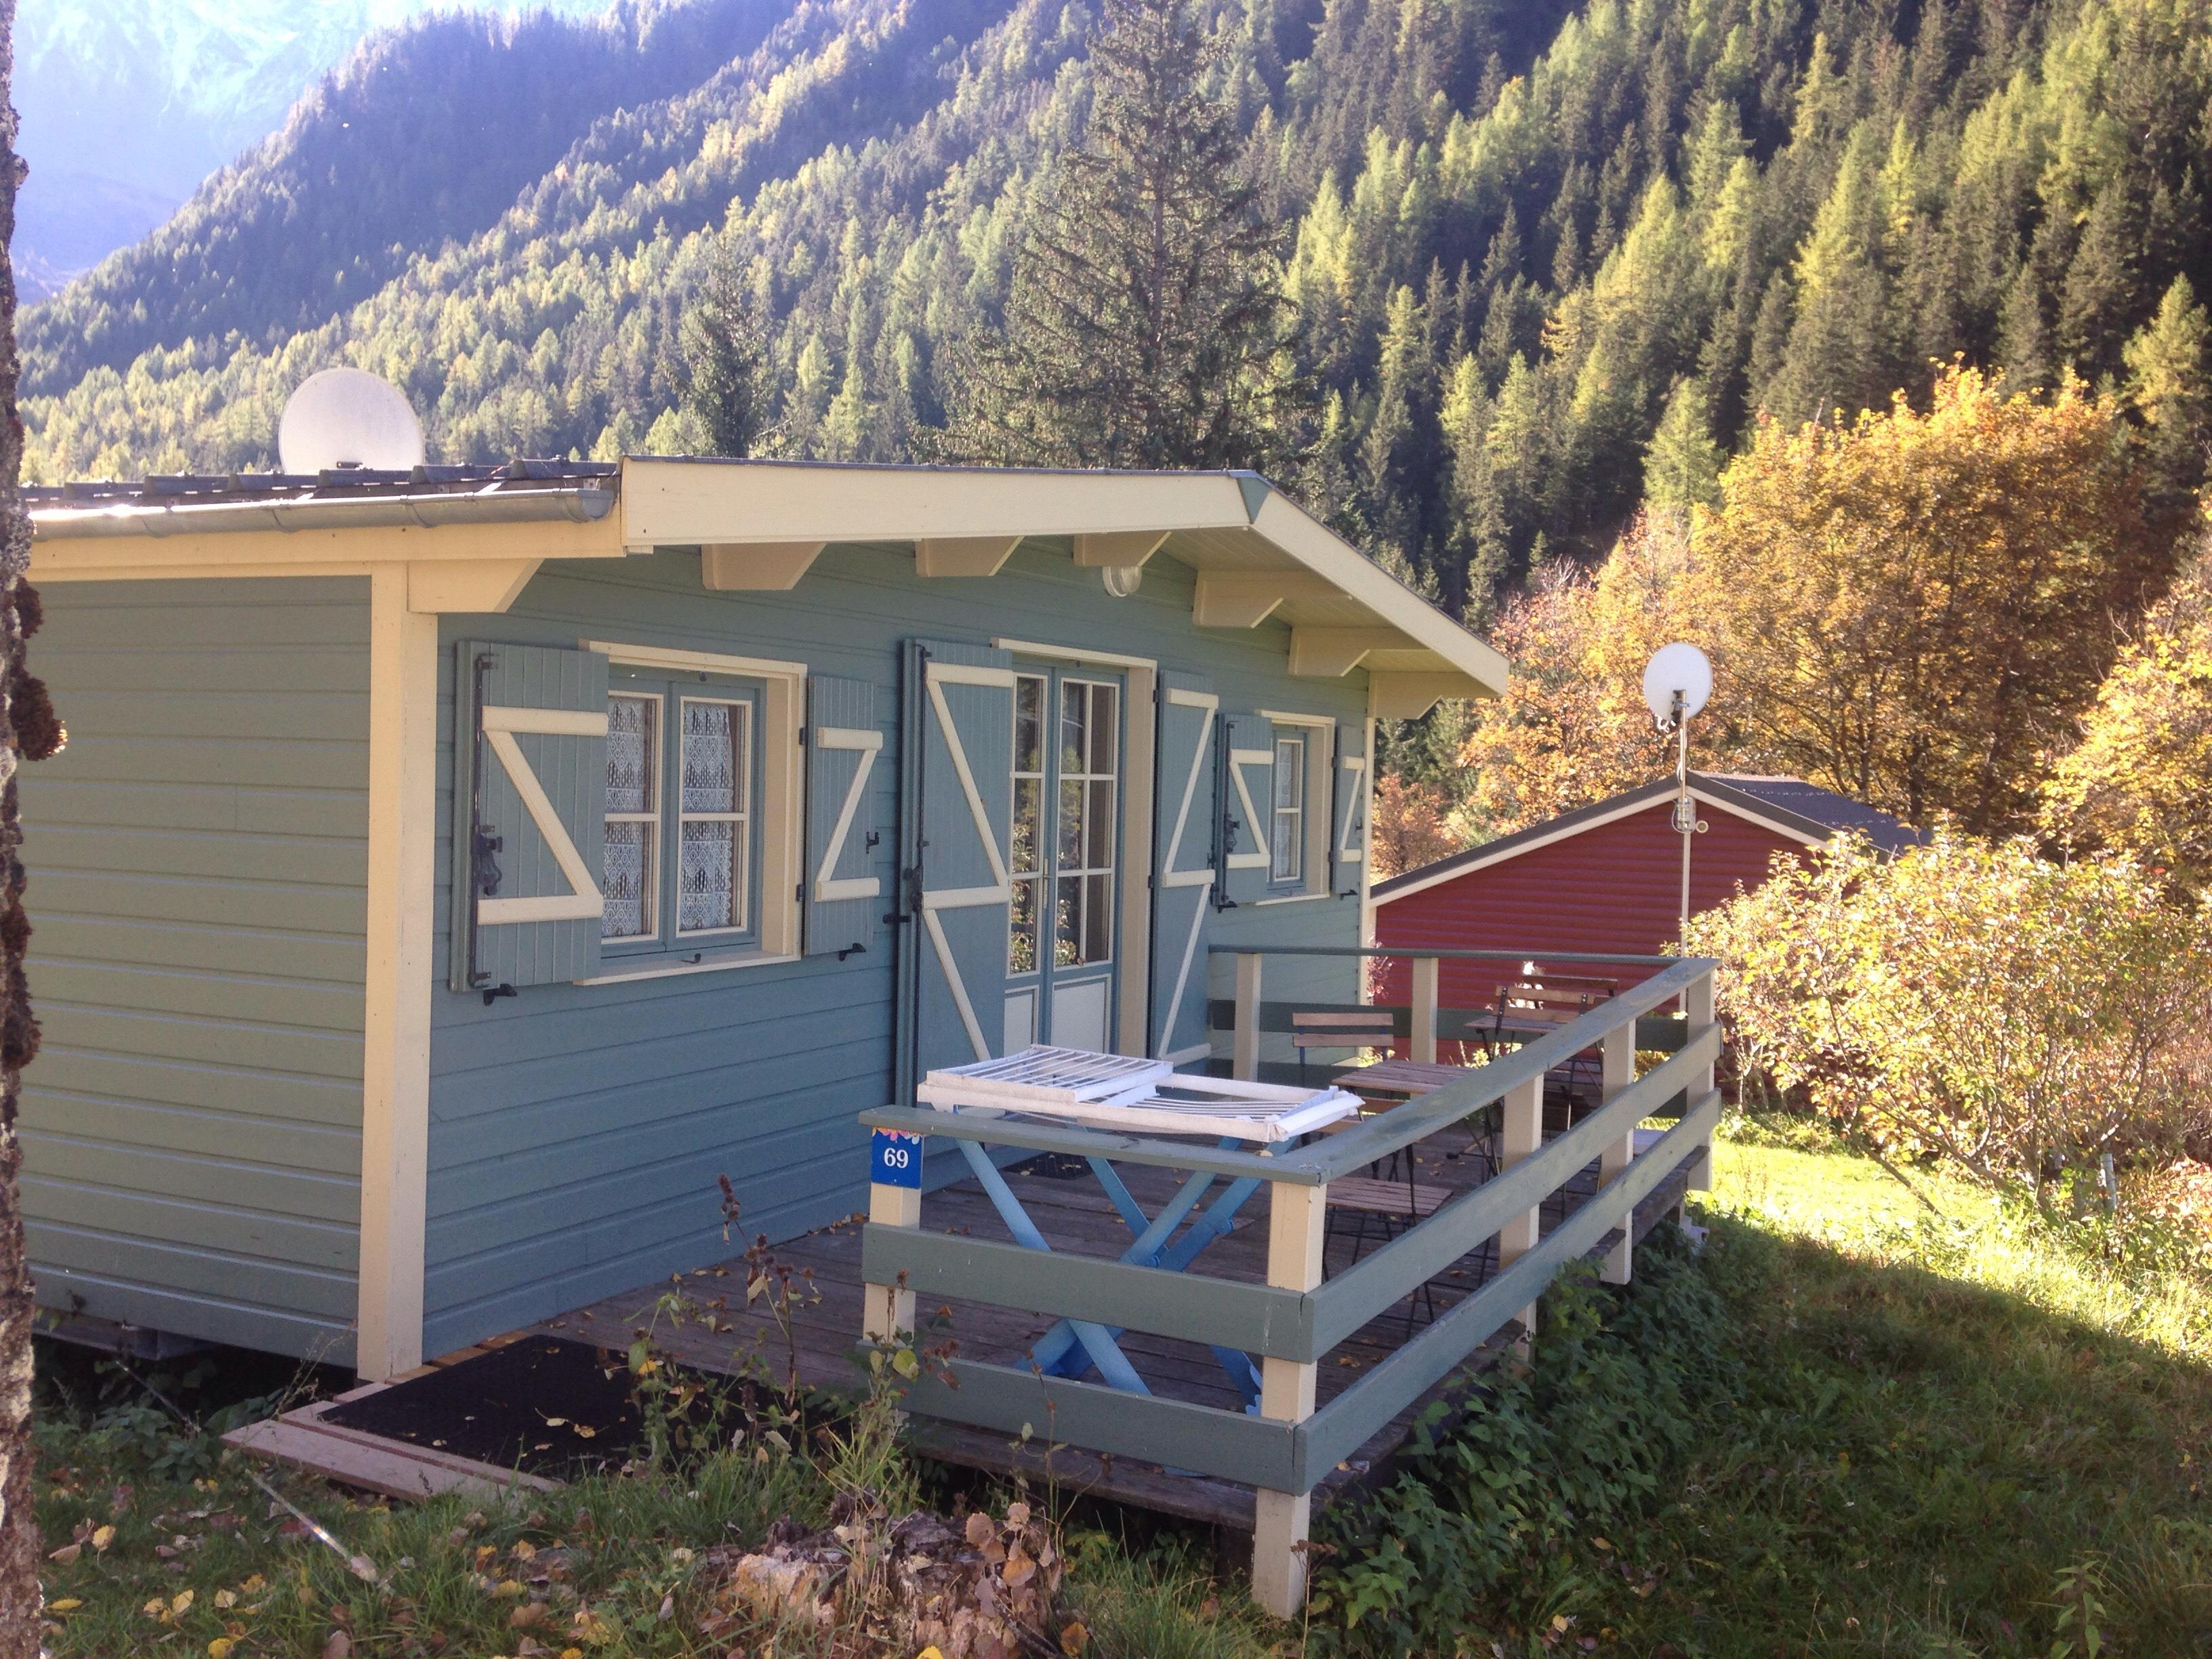 Accommodation - Chalet Beaufortain 29M² 2 Bedrooms + Terrace 12M² - Camping Les Lanchettes